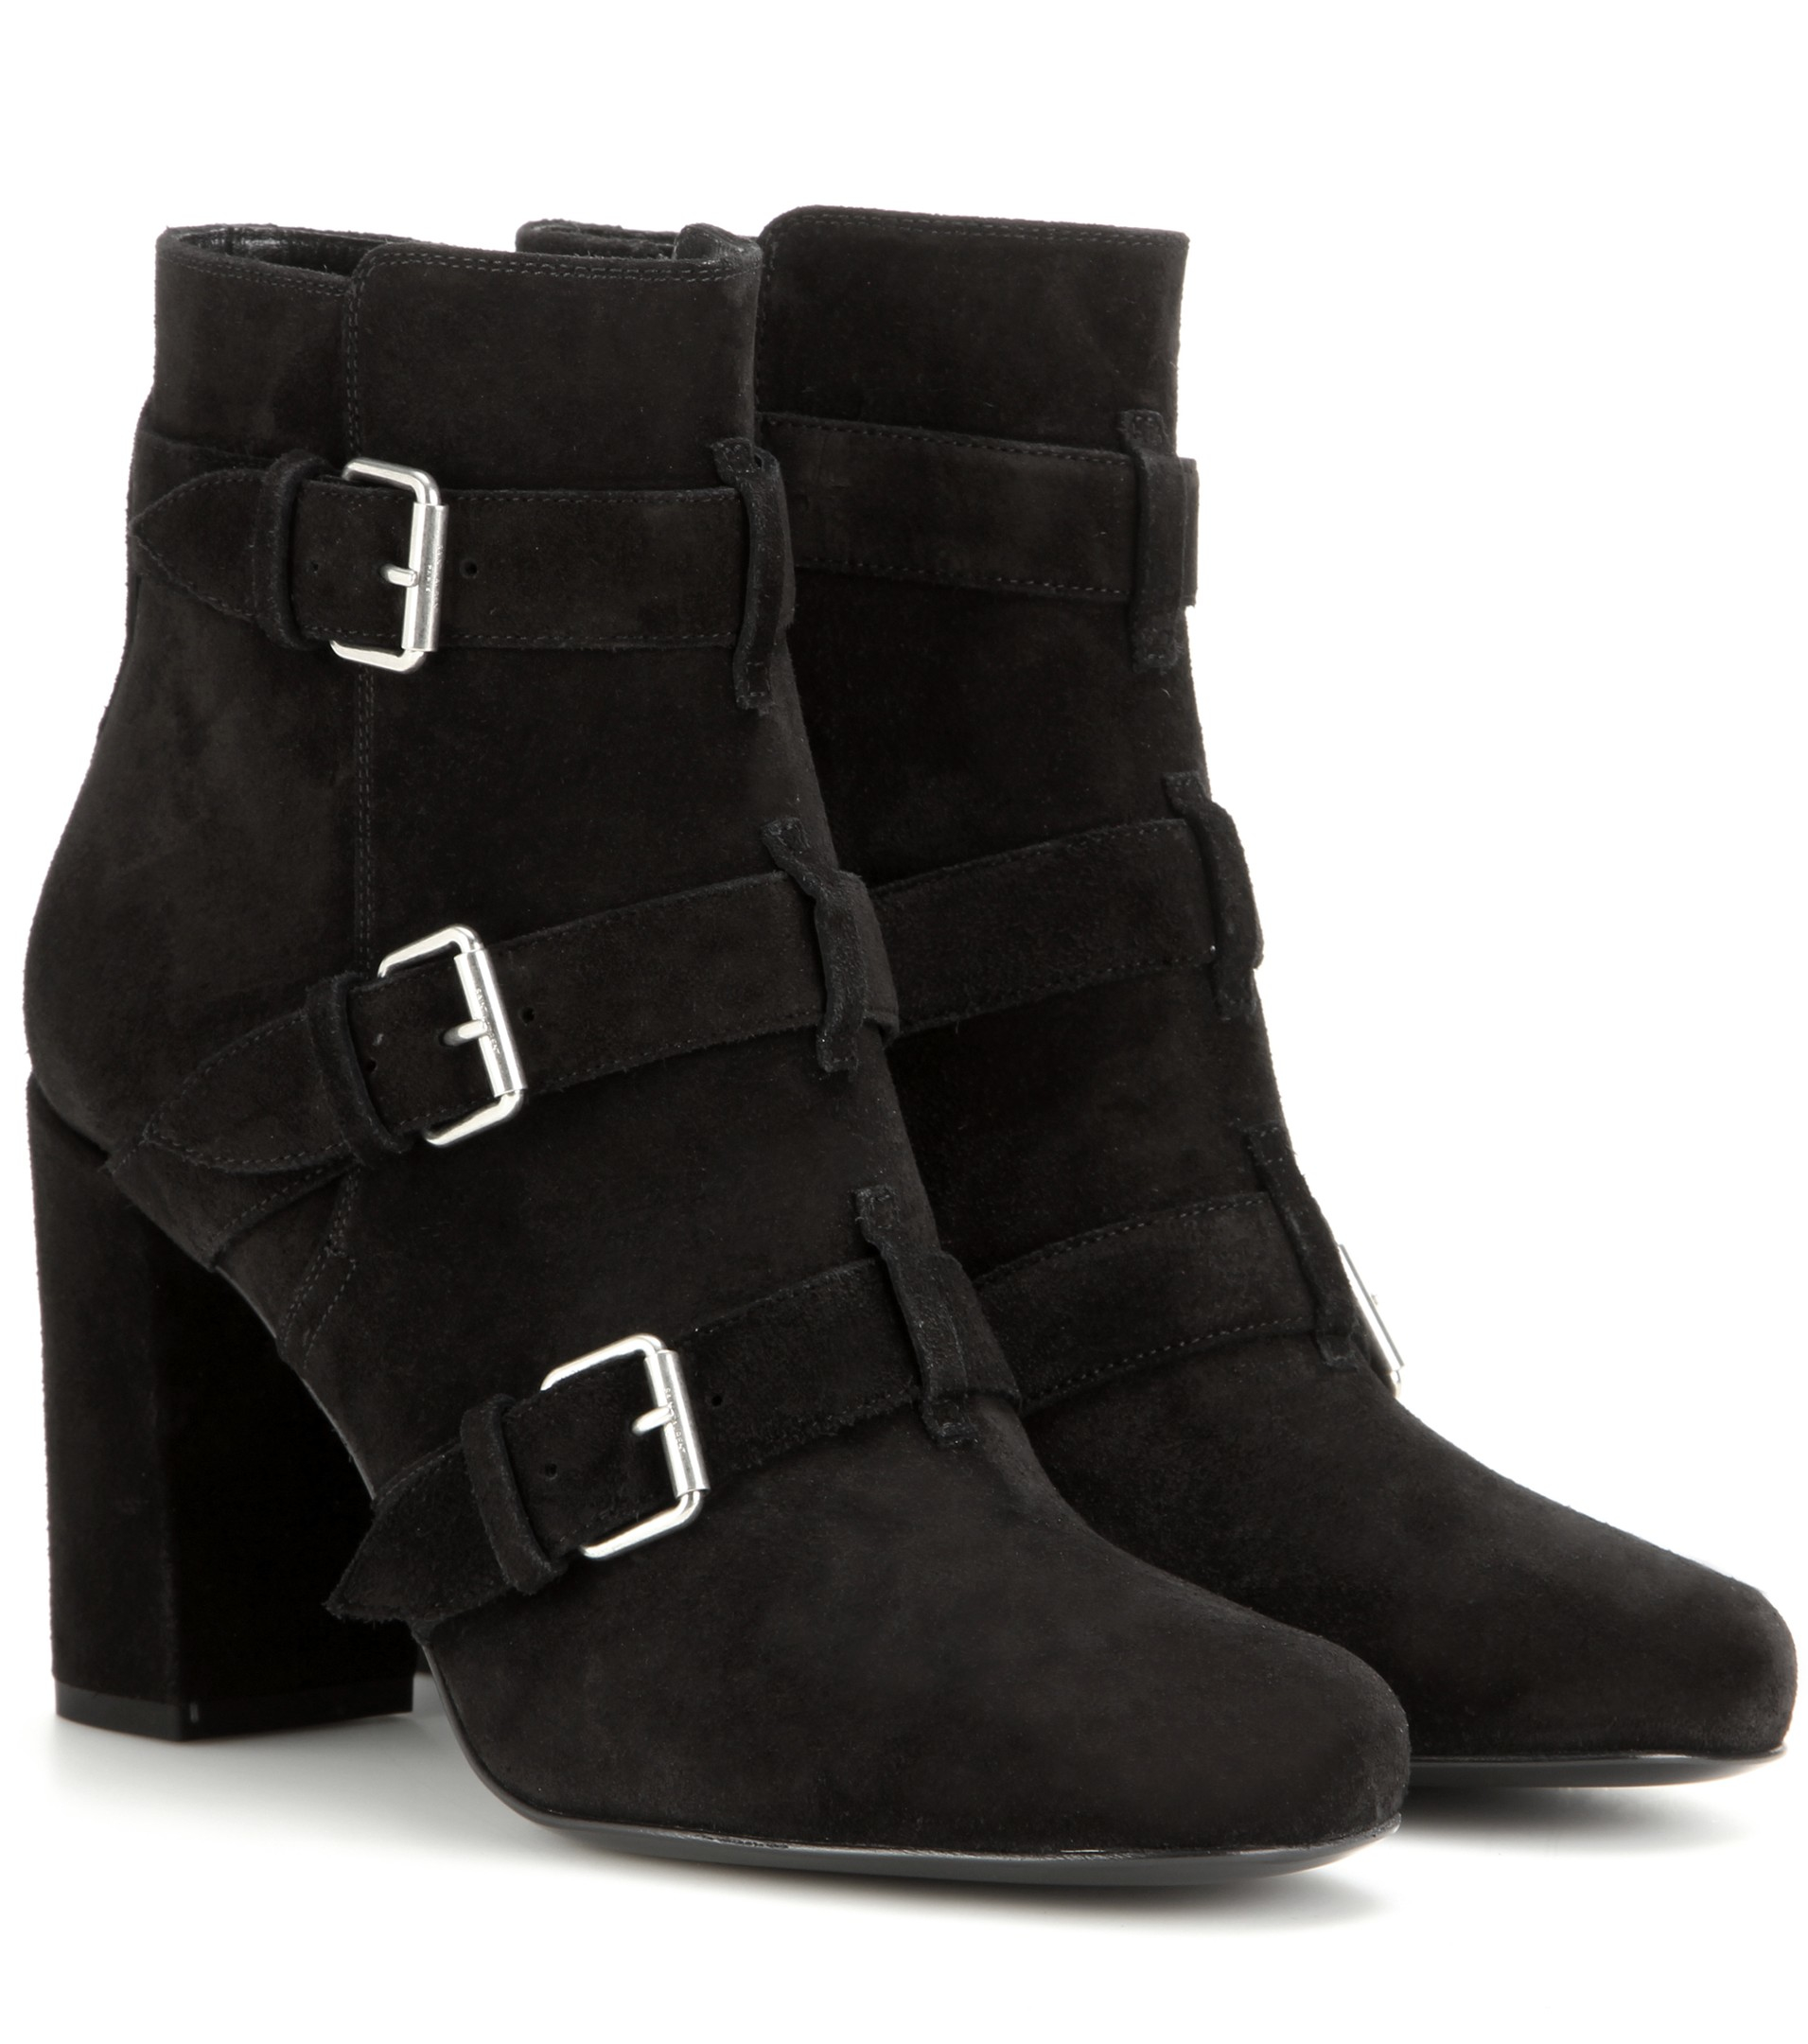 Saint Laurent Strapped Buckle Ankle Boots nUQ0hwaP